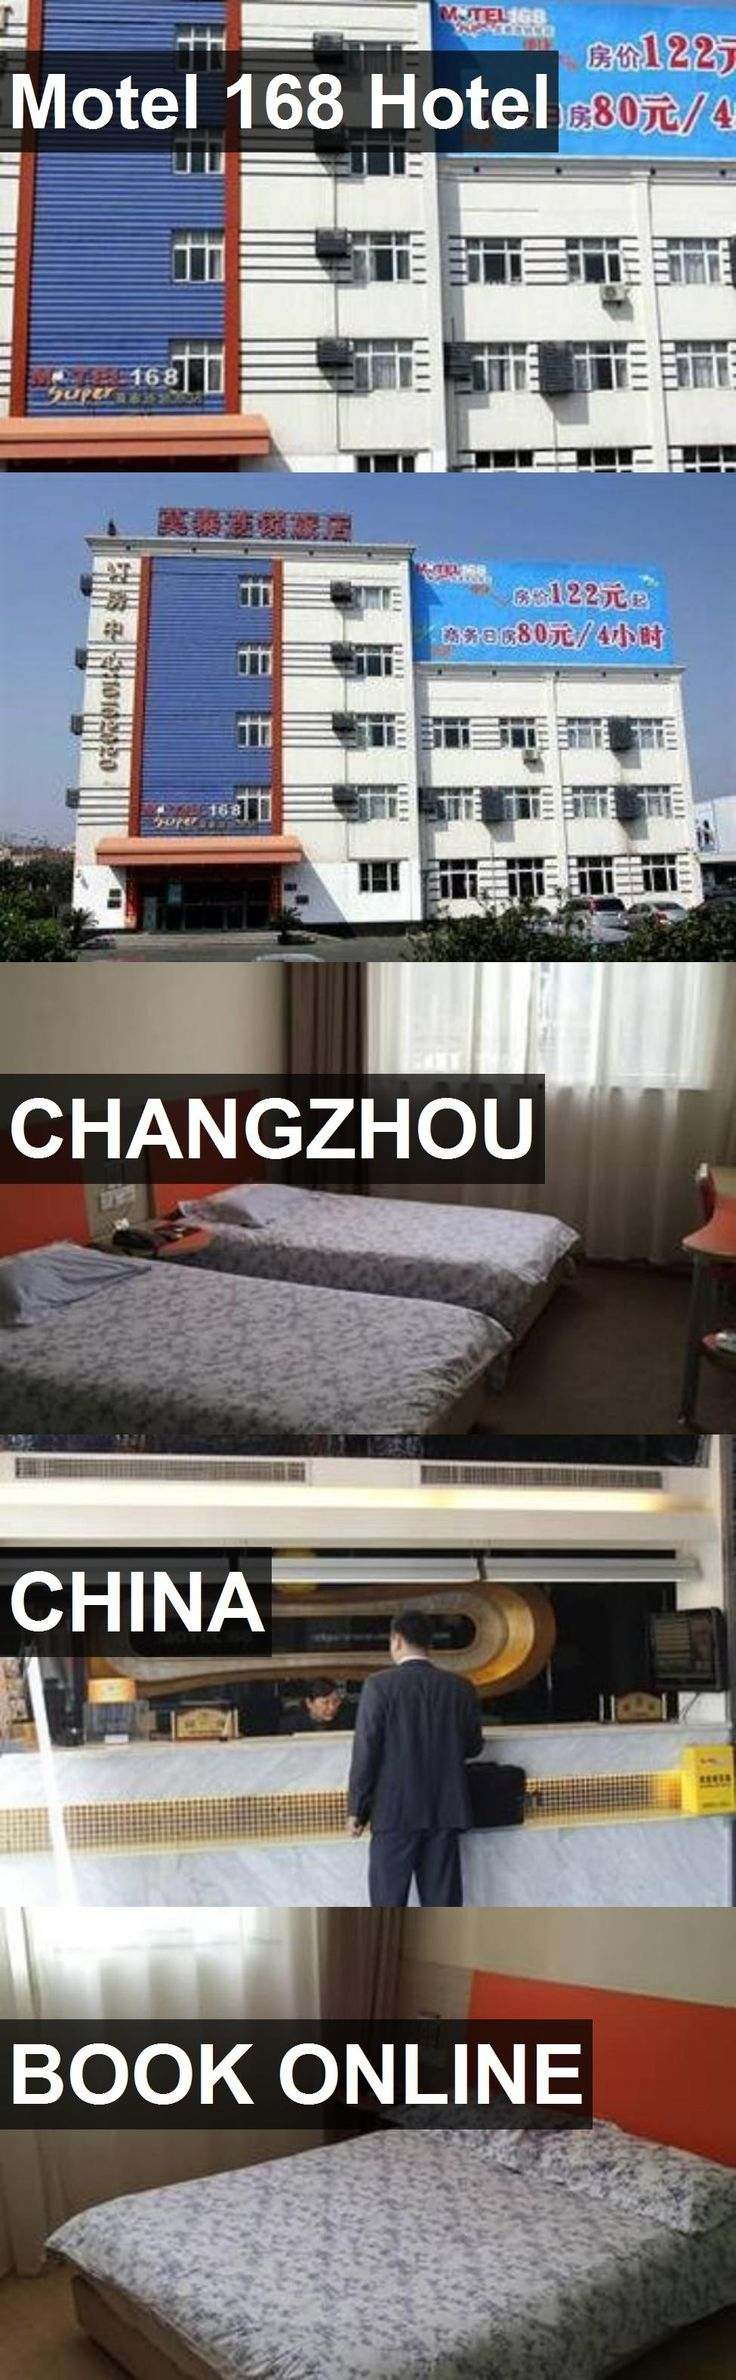 Motel 168 Hotel in Changzhou, China. For more information, photos, reviews and best prices please follow the link. #China #Changzhou #travel #vacation #hotel